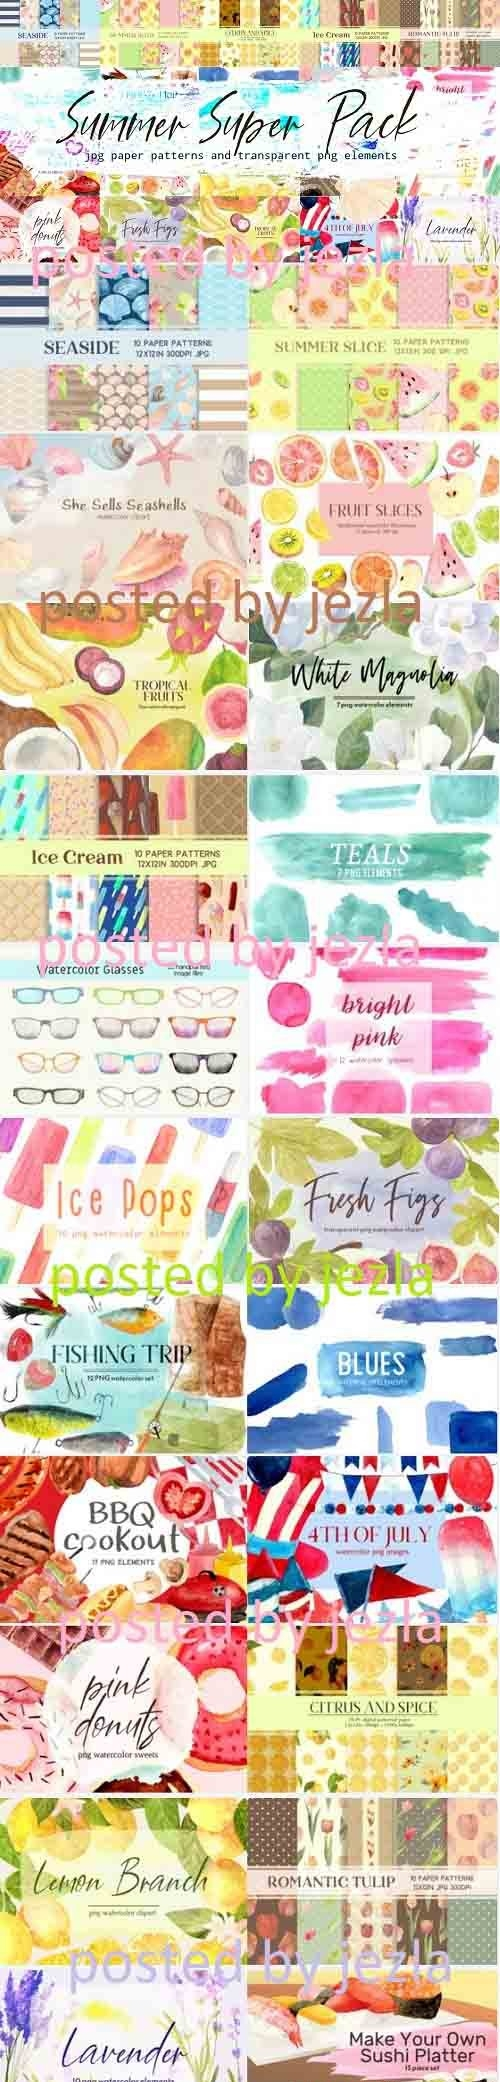 Summer Floral, Food, and Fun Graphic Set